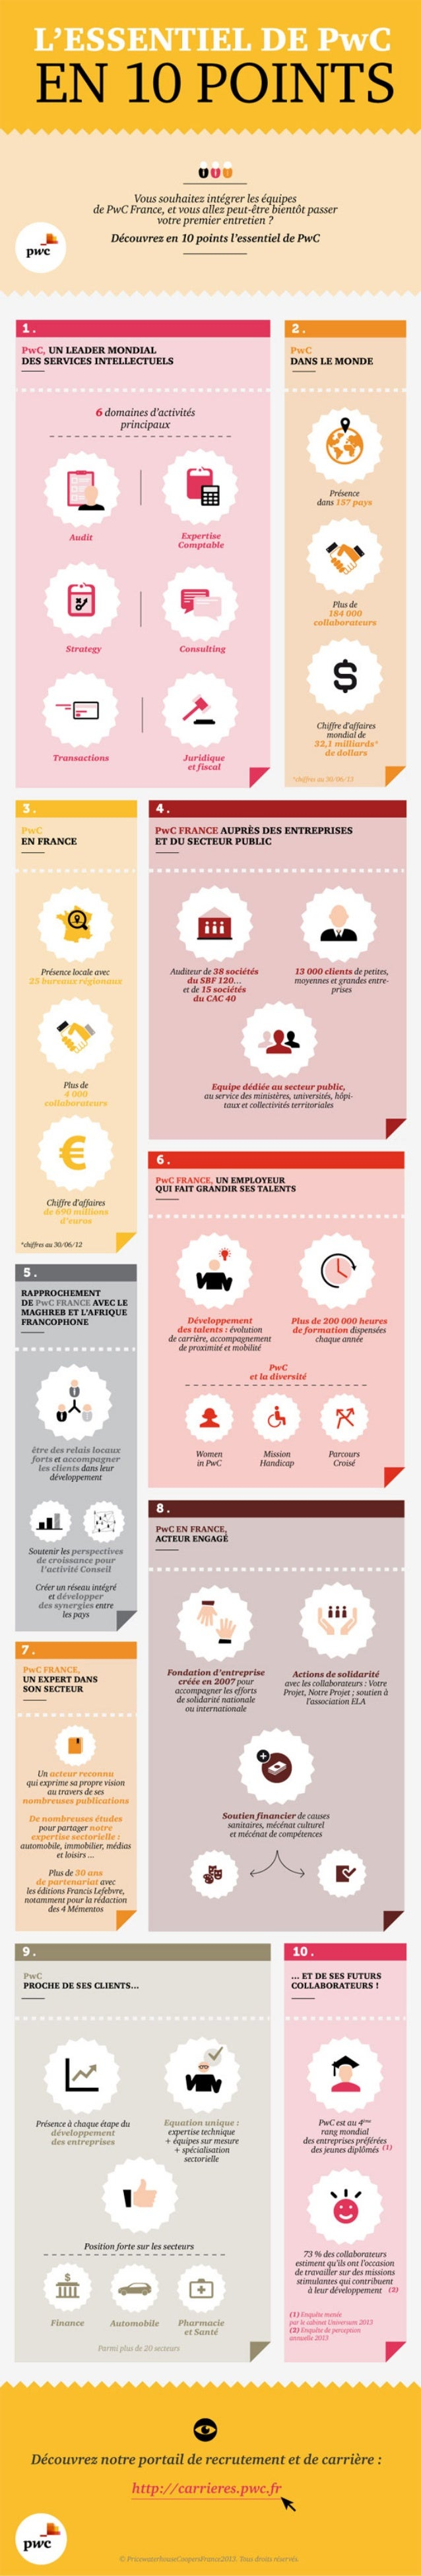 L'essentiel de PwC en 10 points